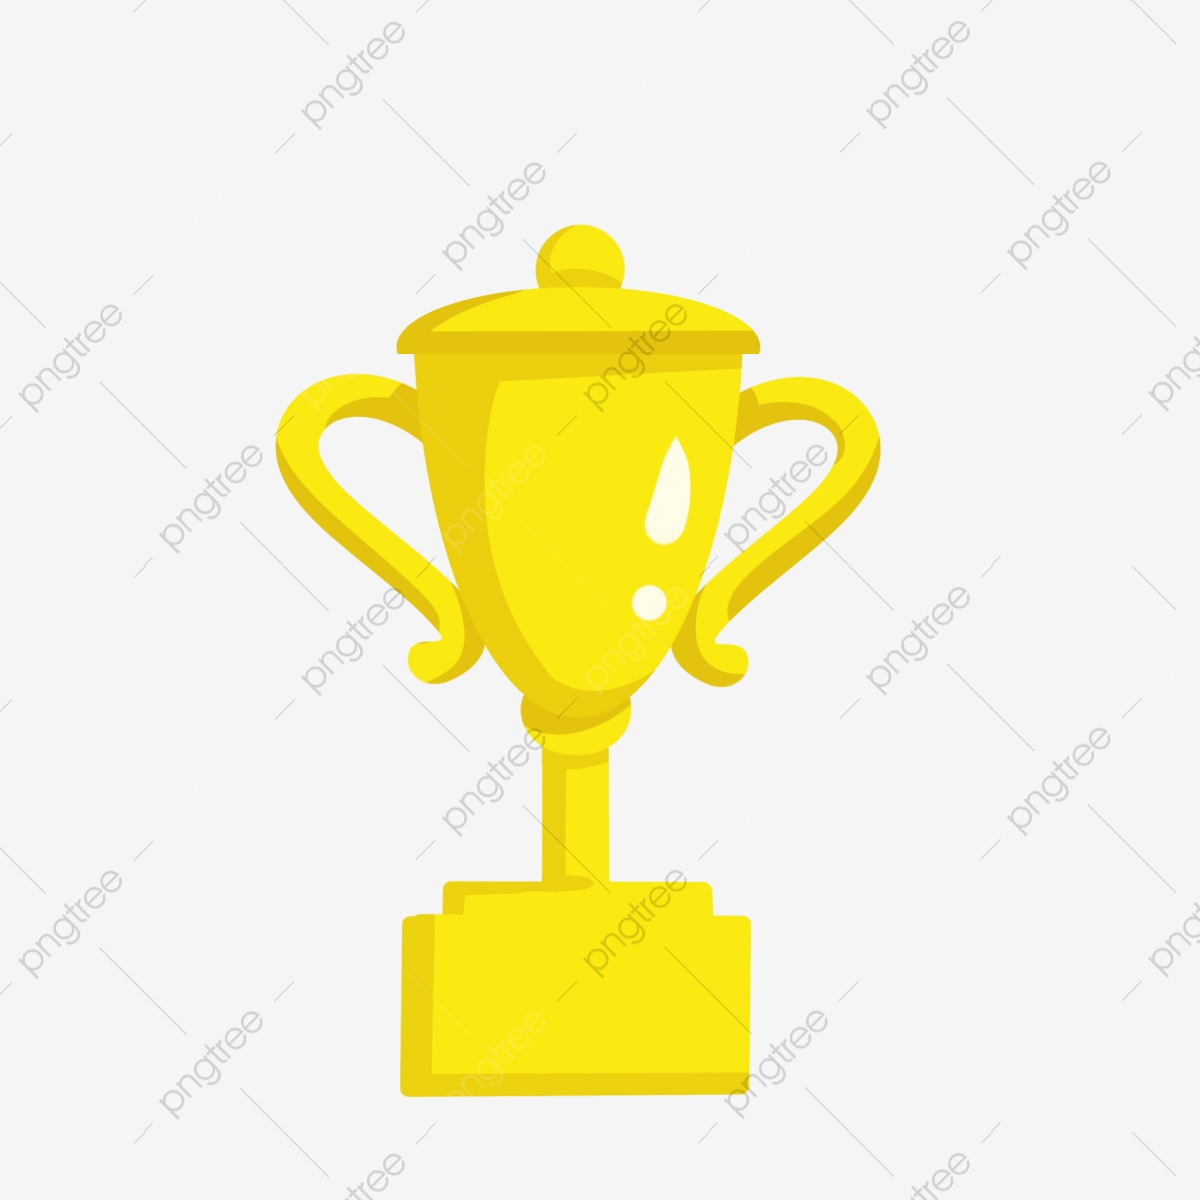 hight resolution of commercial use resource upgrade to premium plan and get license authorization upgradenow golden trophy trophy clipart